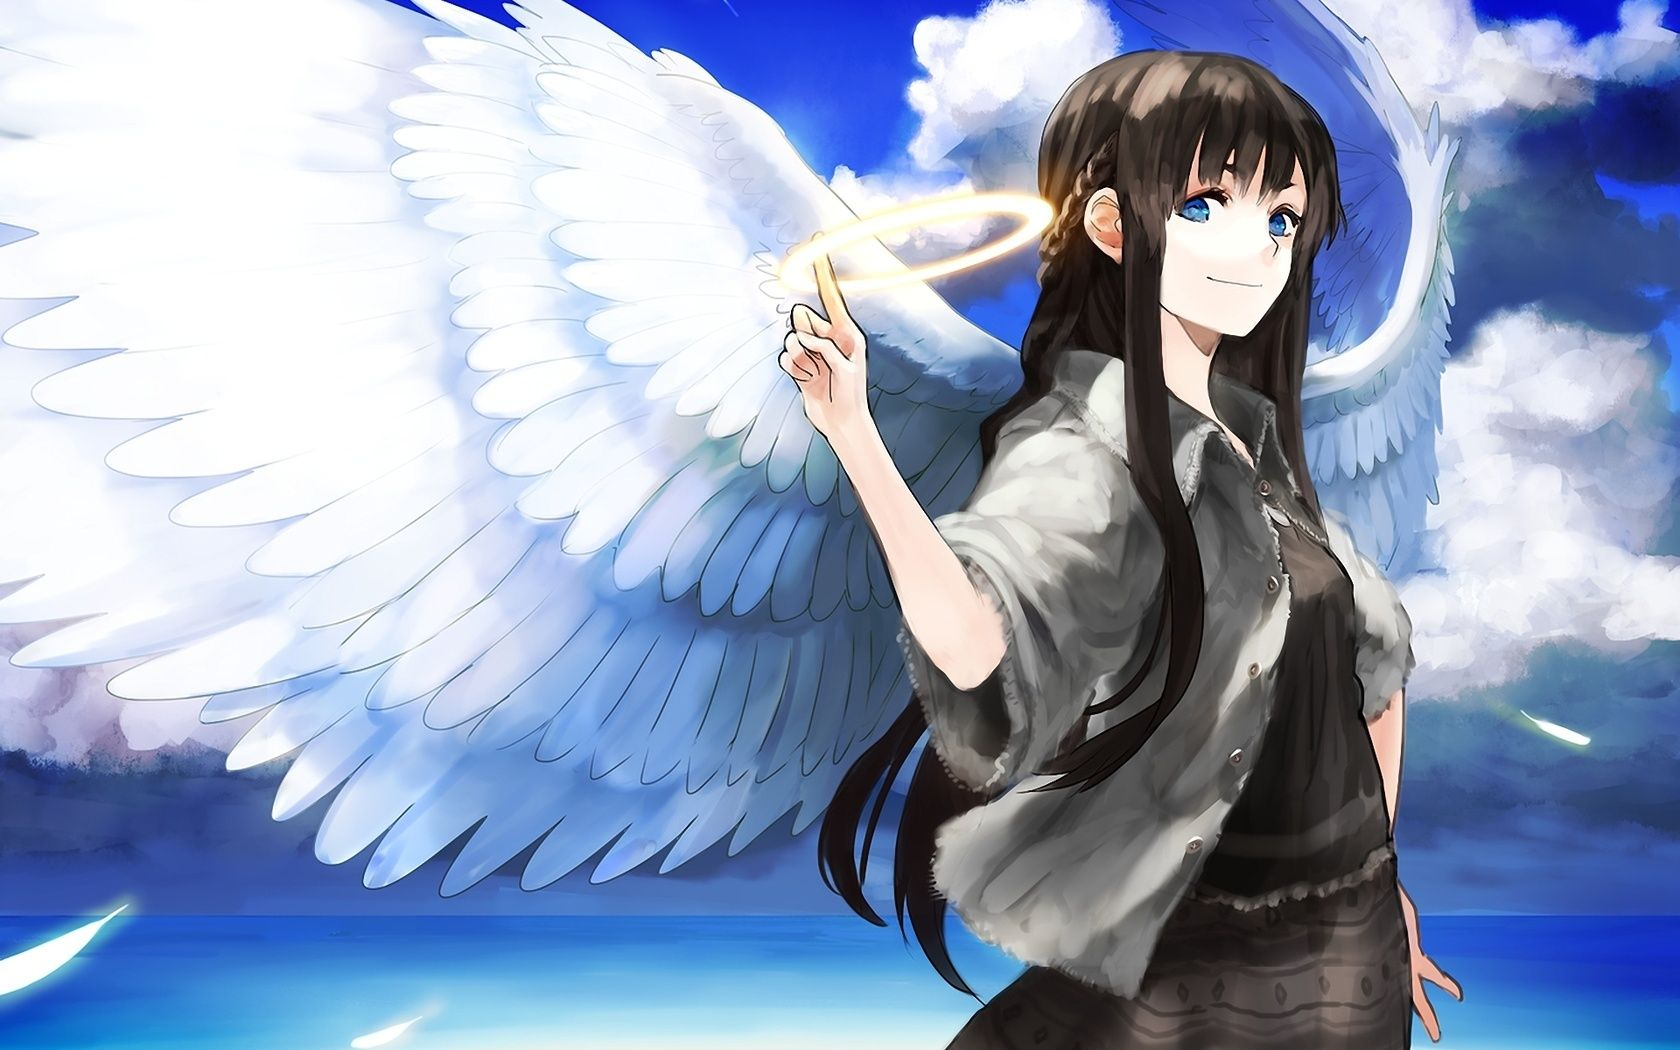 Anime Angel Girl Wallpapers Top Free Anime Angel Girl